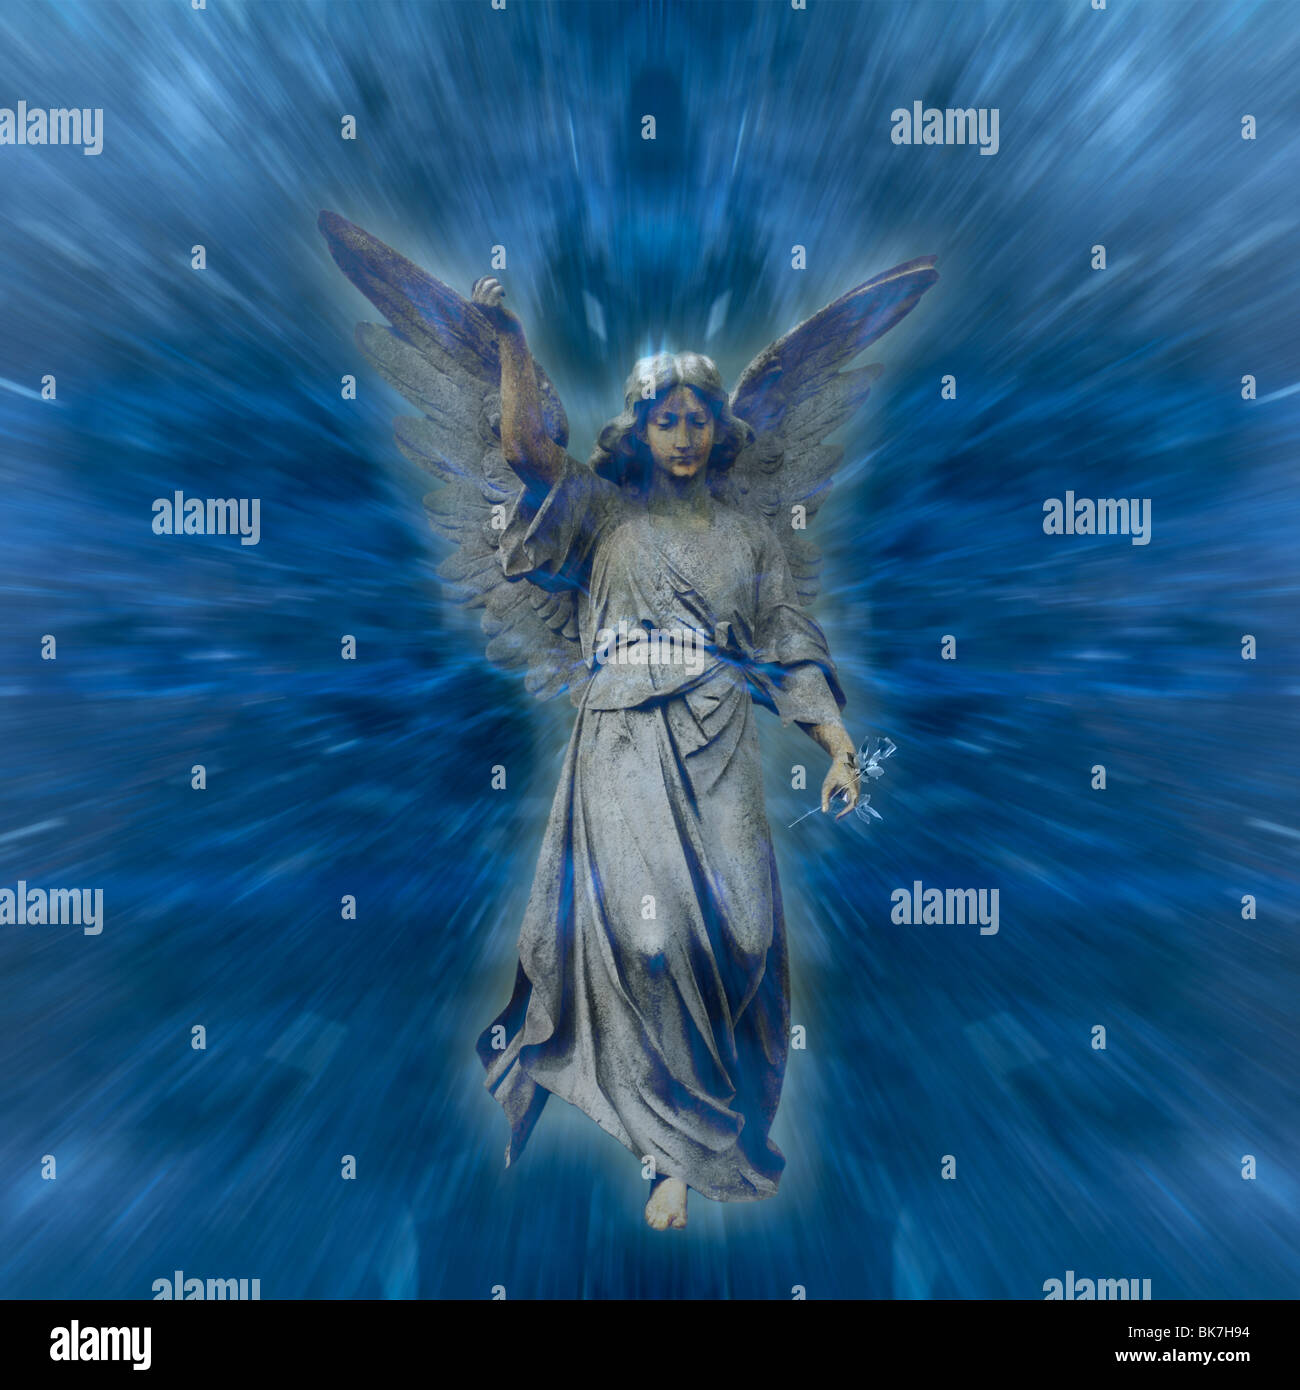 An Angel, out of the blue. - Stock Image